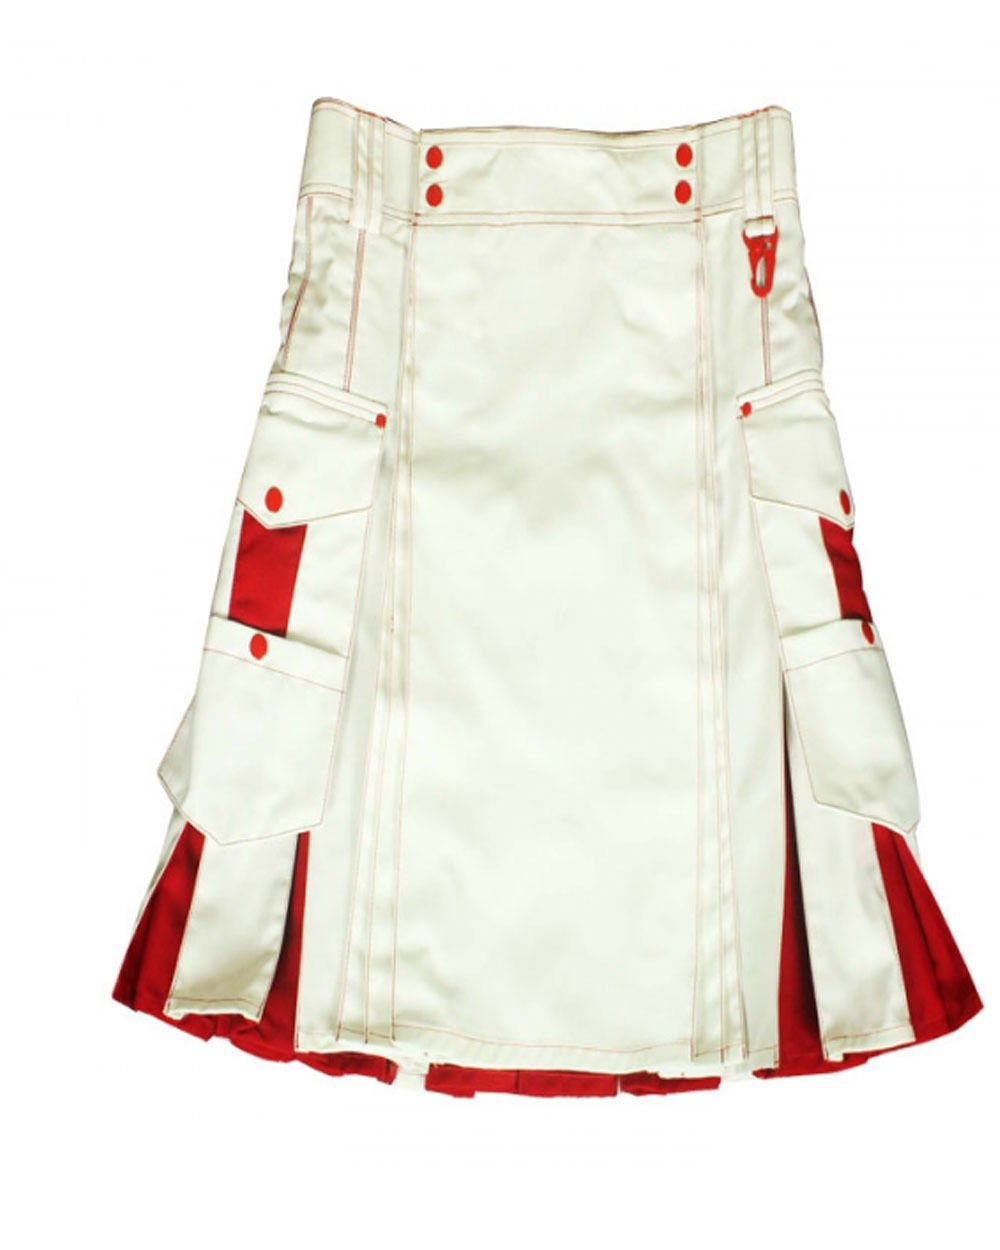 42 Size Handmade White & Red Cotton Kilt for Active Men, Hybrid Cotton Utility Deluxe Kilt